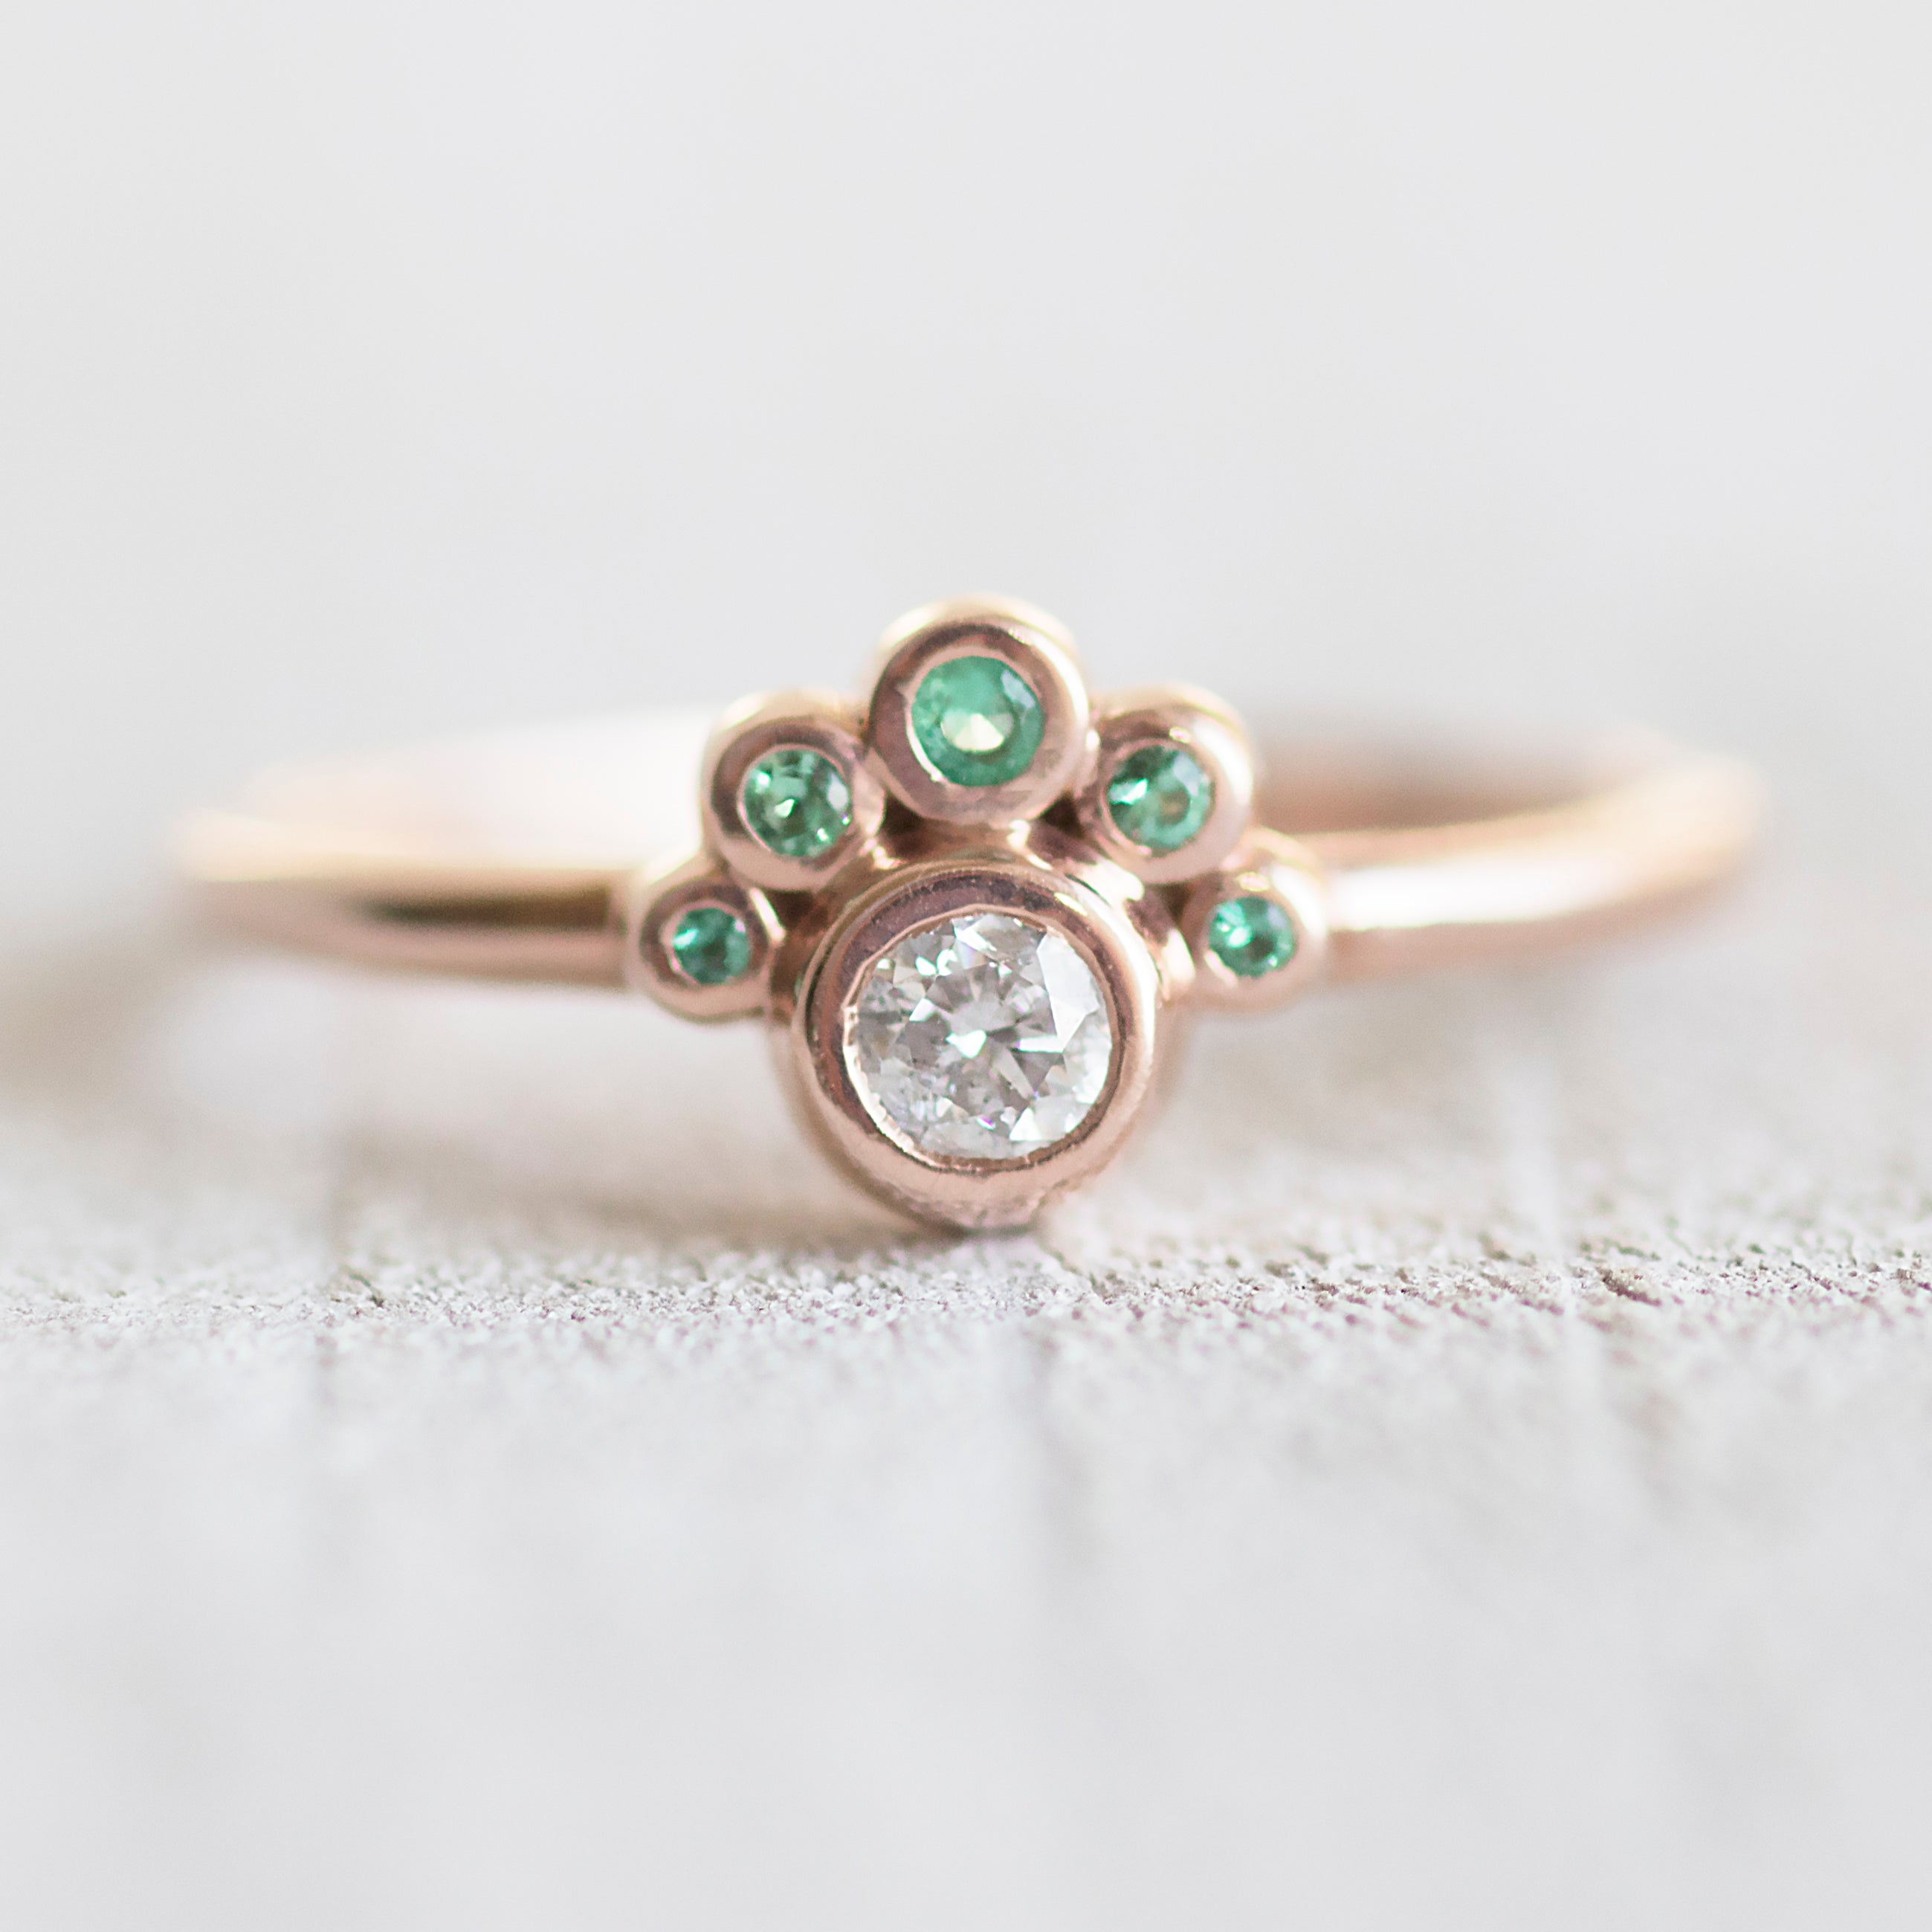 diamond engagement rose oval ring rings product asymmetrical gold samanthaenglandjewellery original by samantha